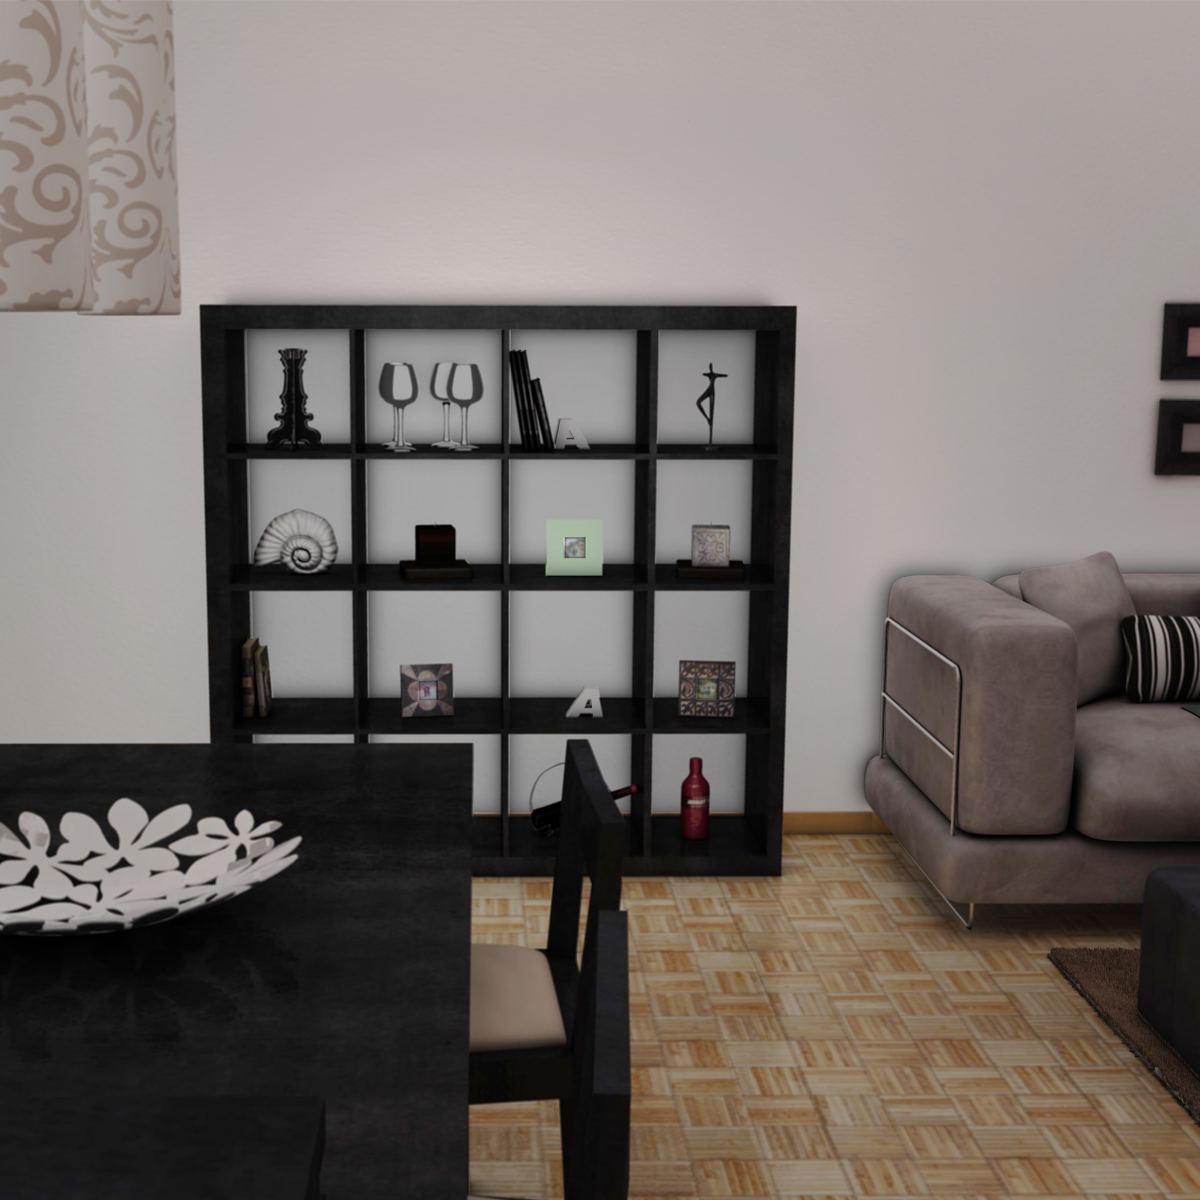 living room 3d model 3ds max fbx c4d ma mb obj 159606